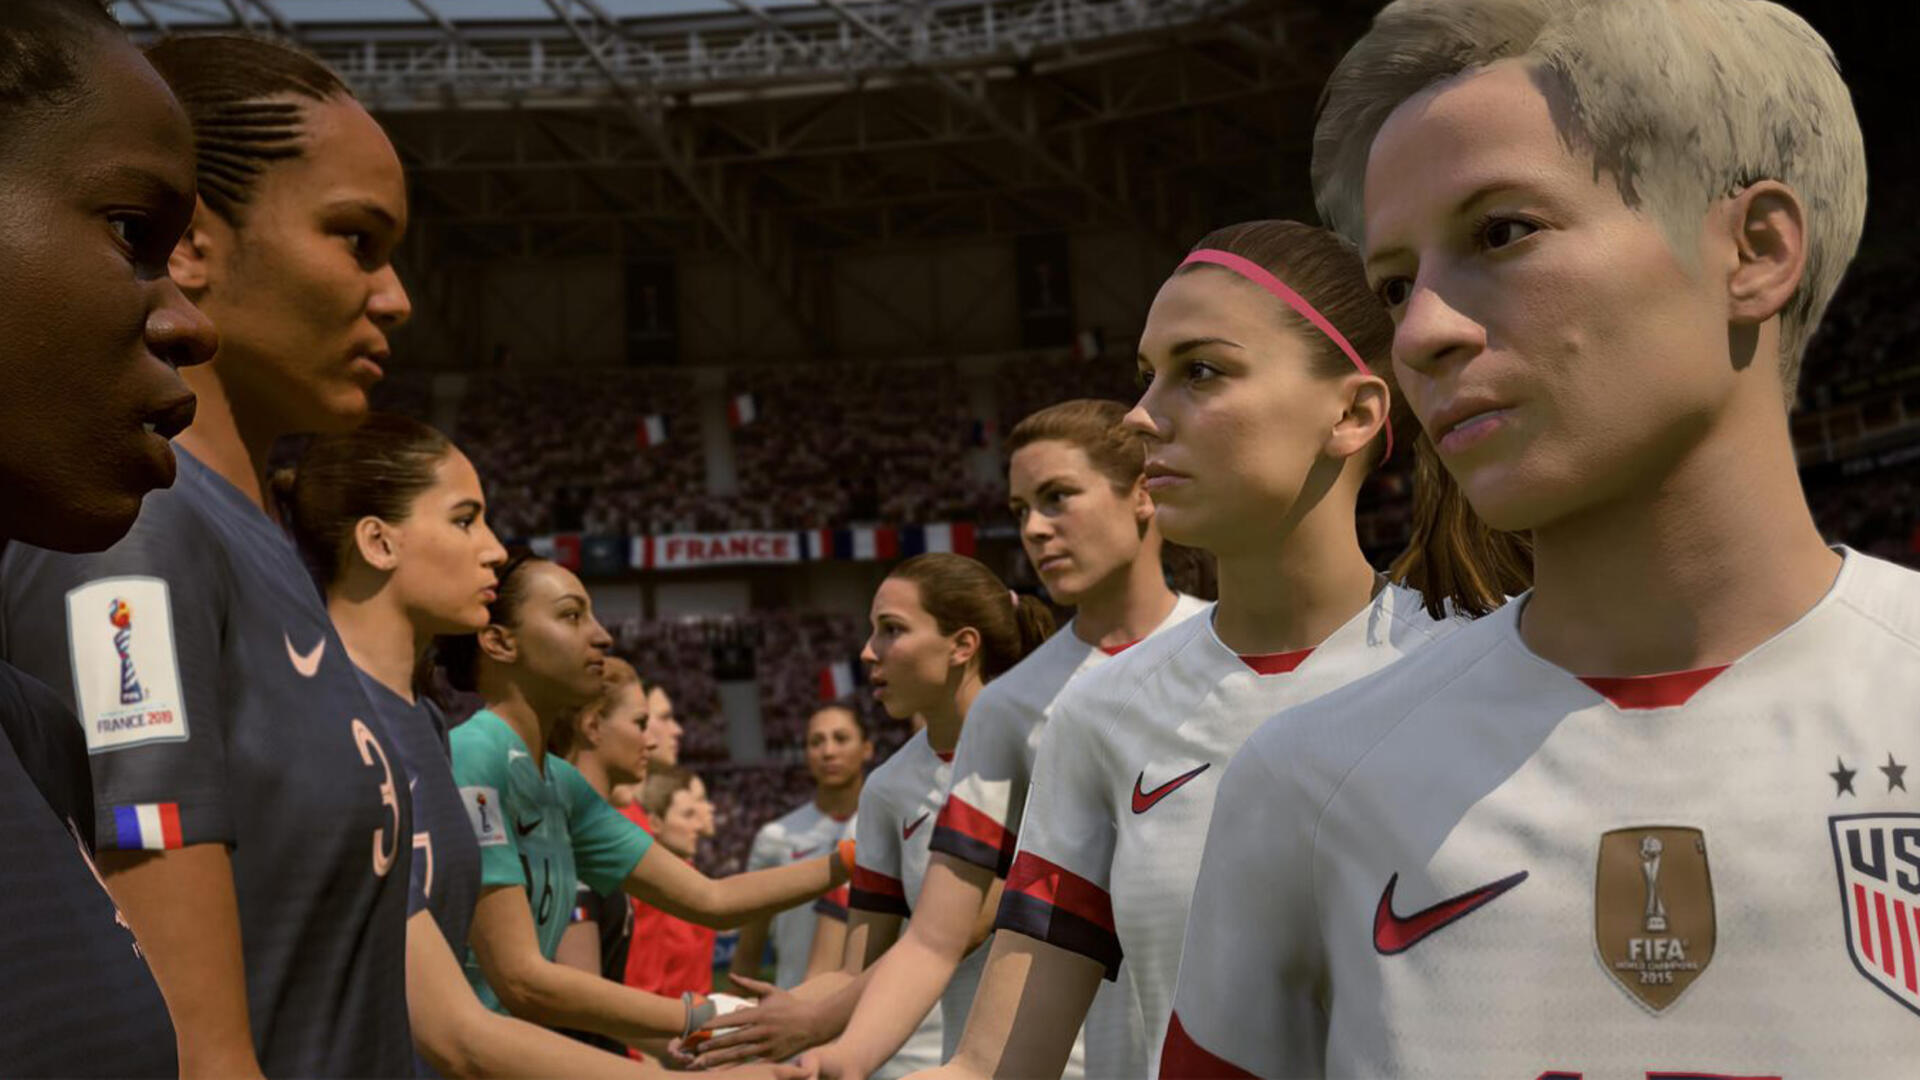 FIFA 21 on PS5 and Xbox Series X Will Continue Including Women's Teams |  USgamer